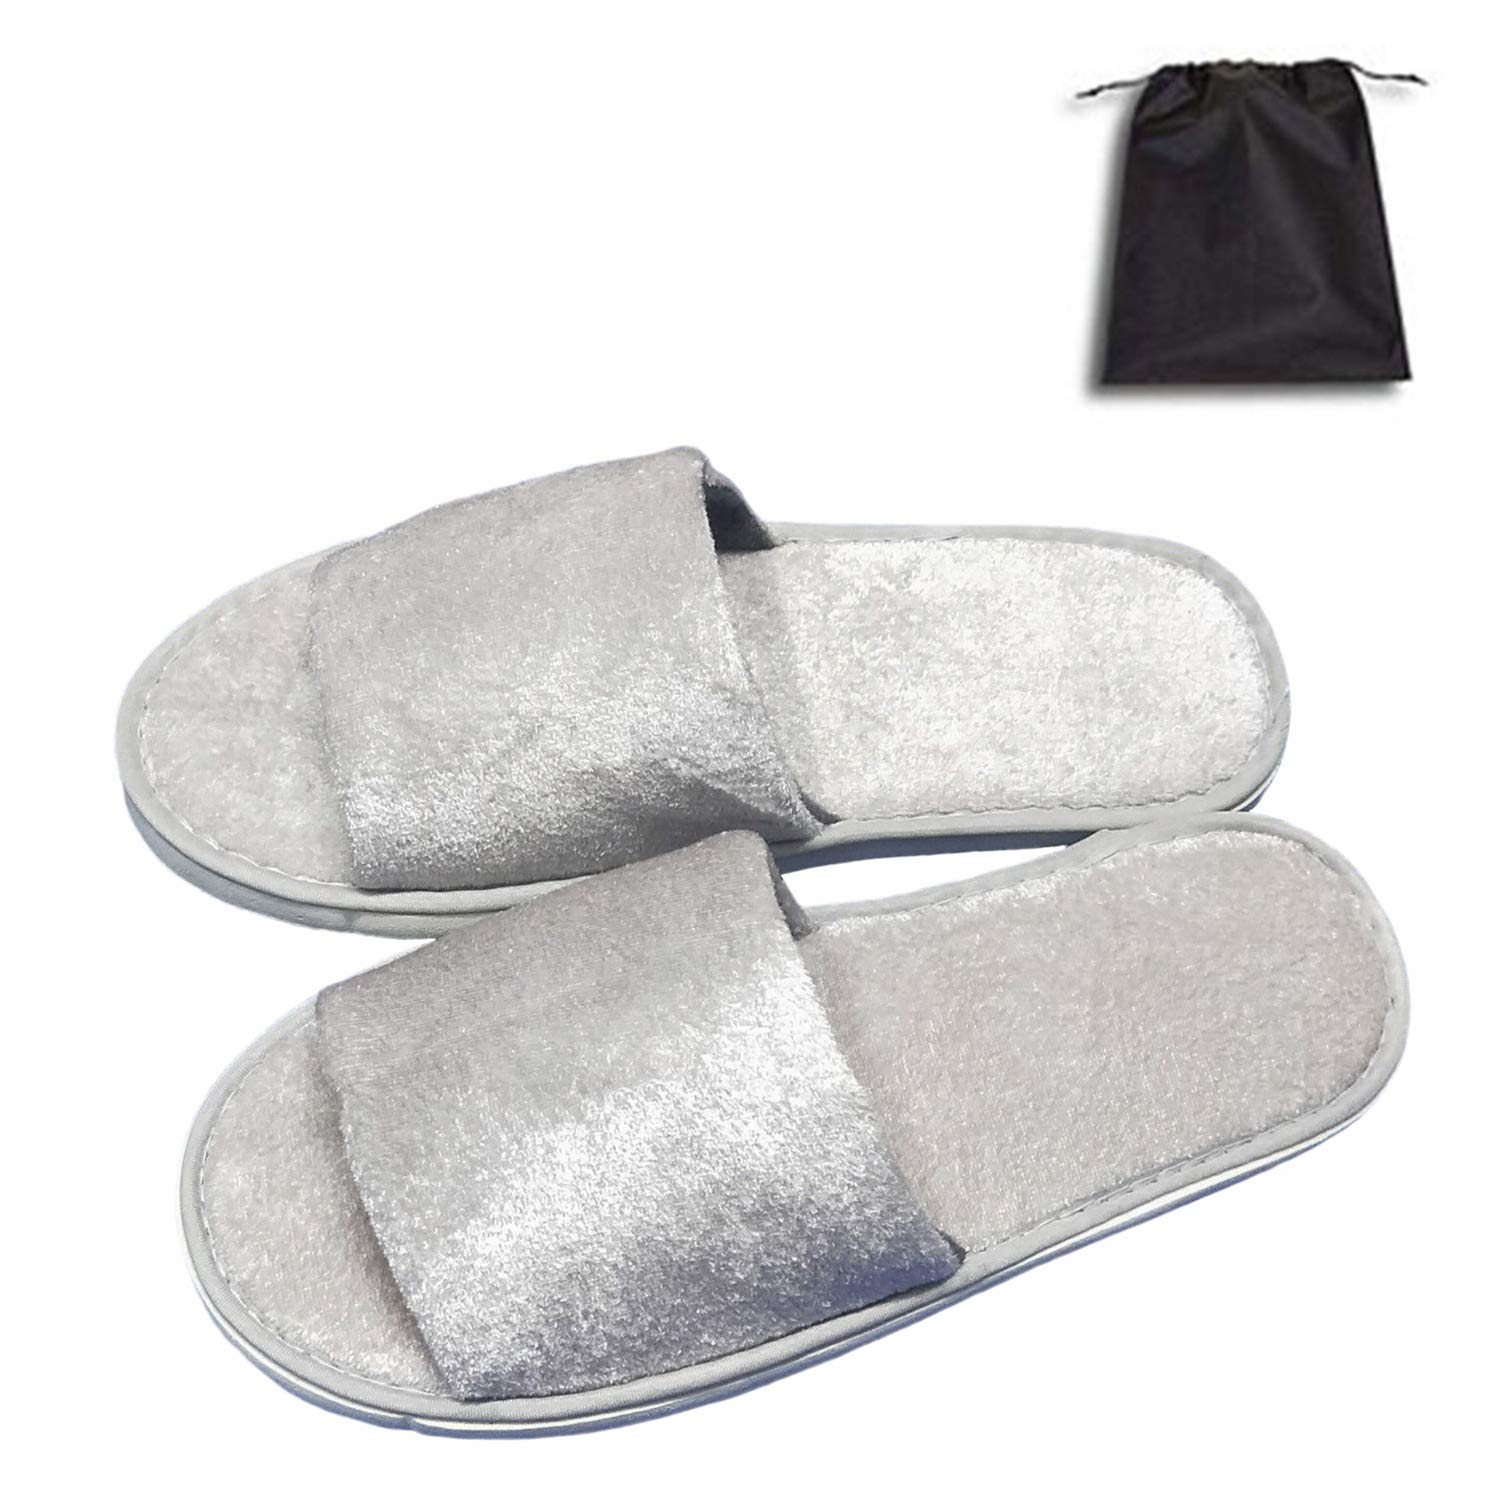 5 Pair of Open Toe online shop Breathable Guests Selling for Slippers Spa